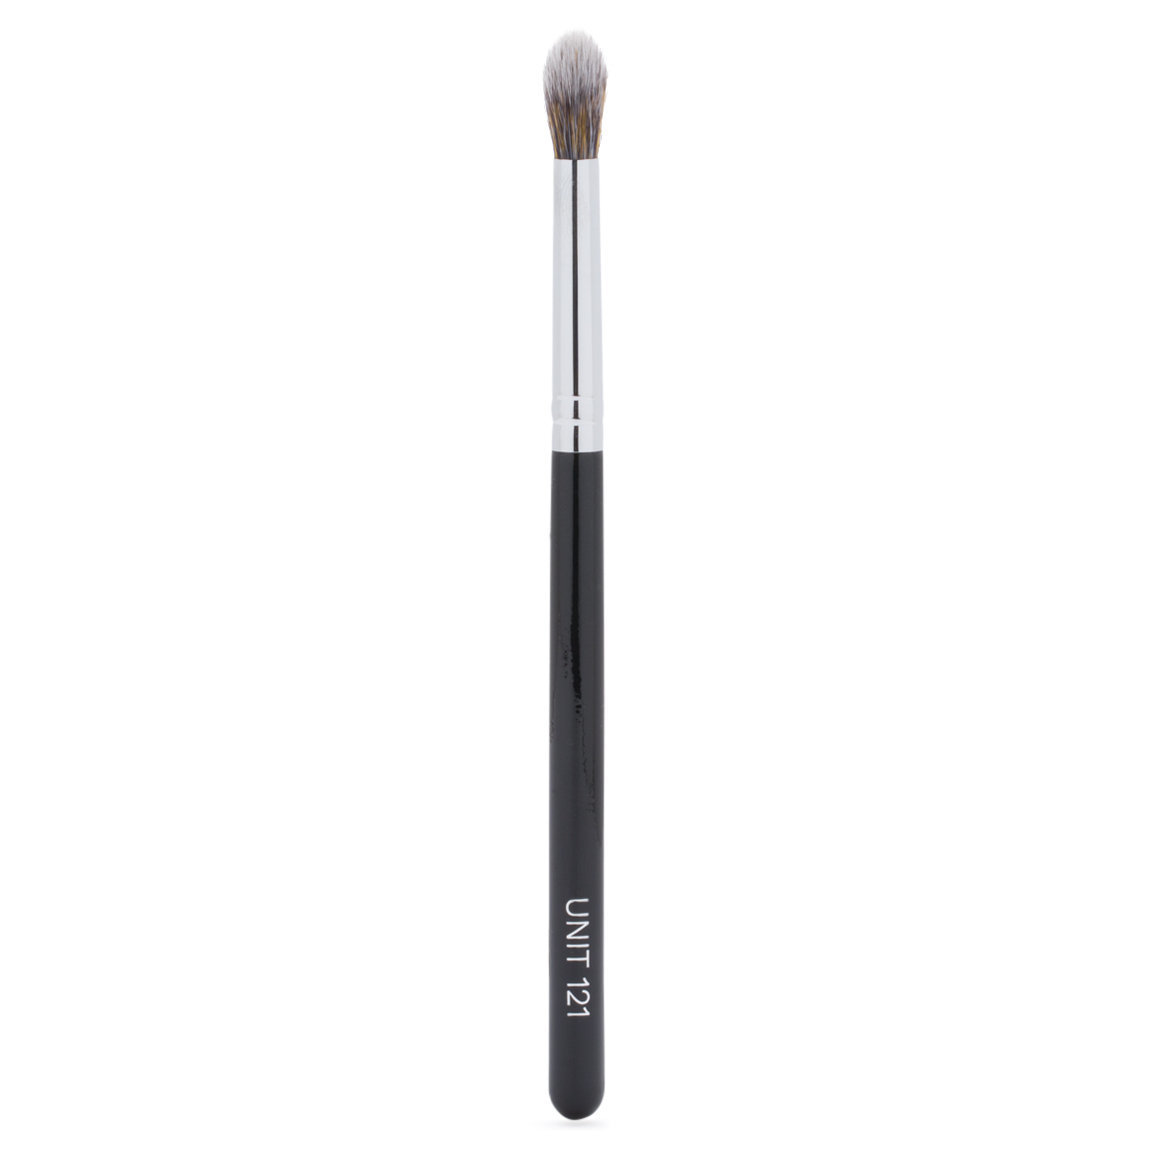 UNITS UNIT 121 Eye Brush product smear.